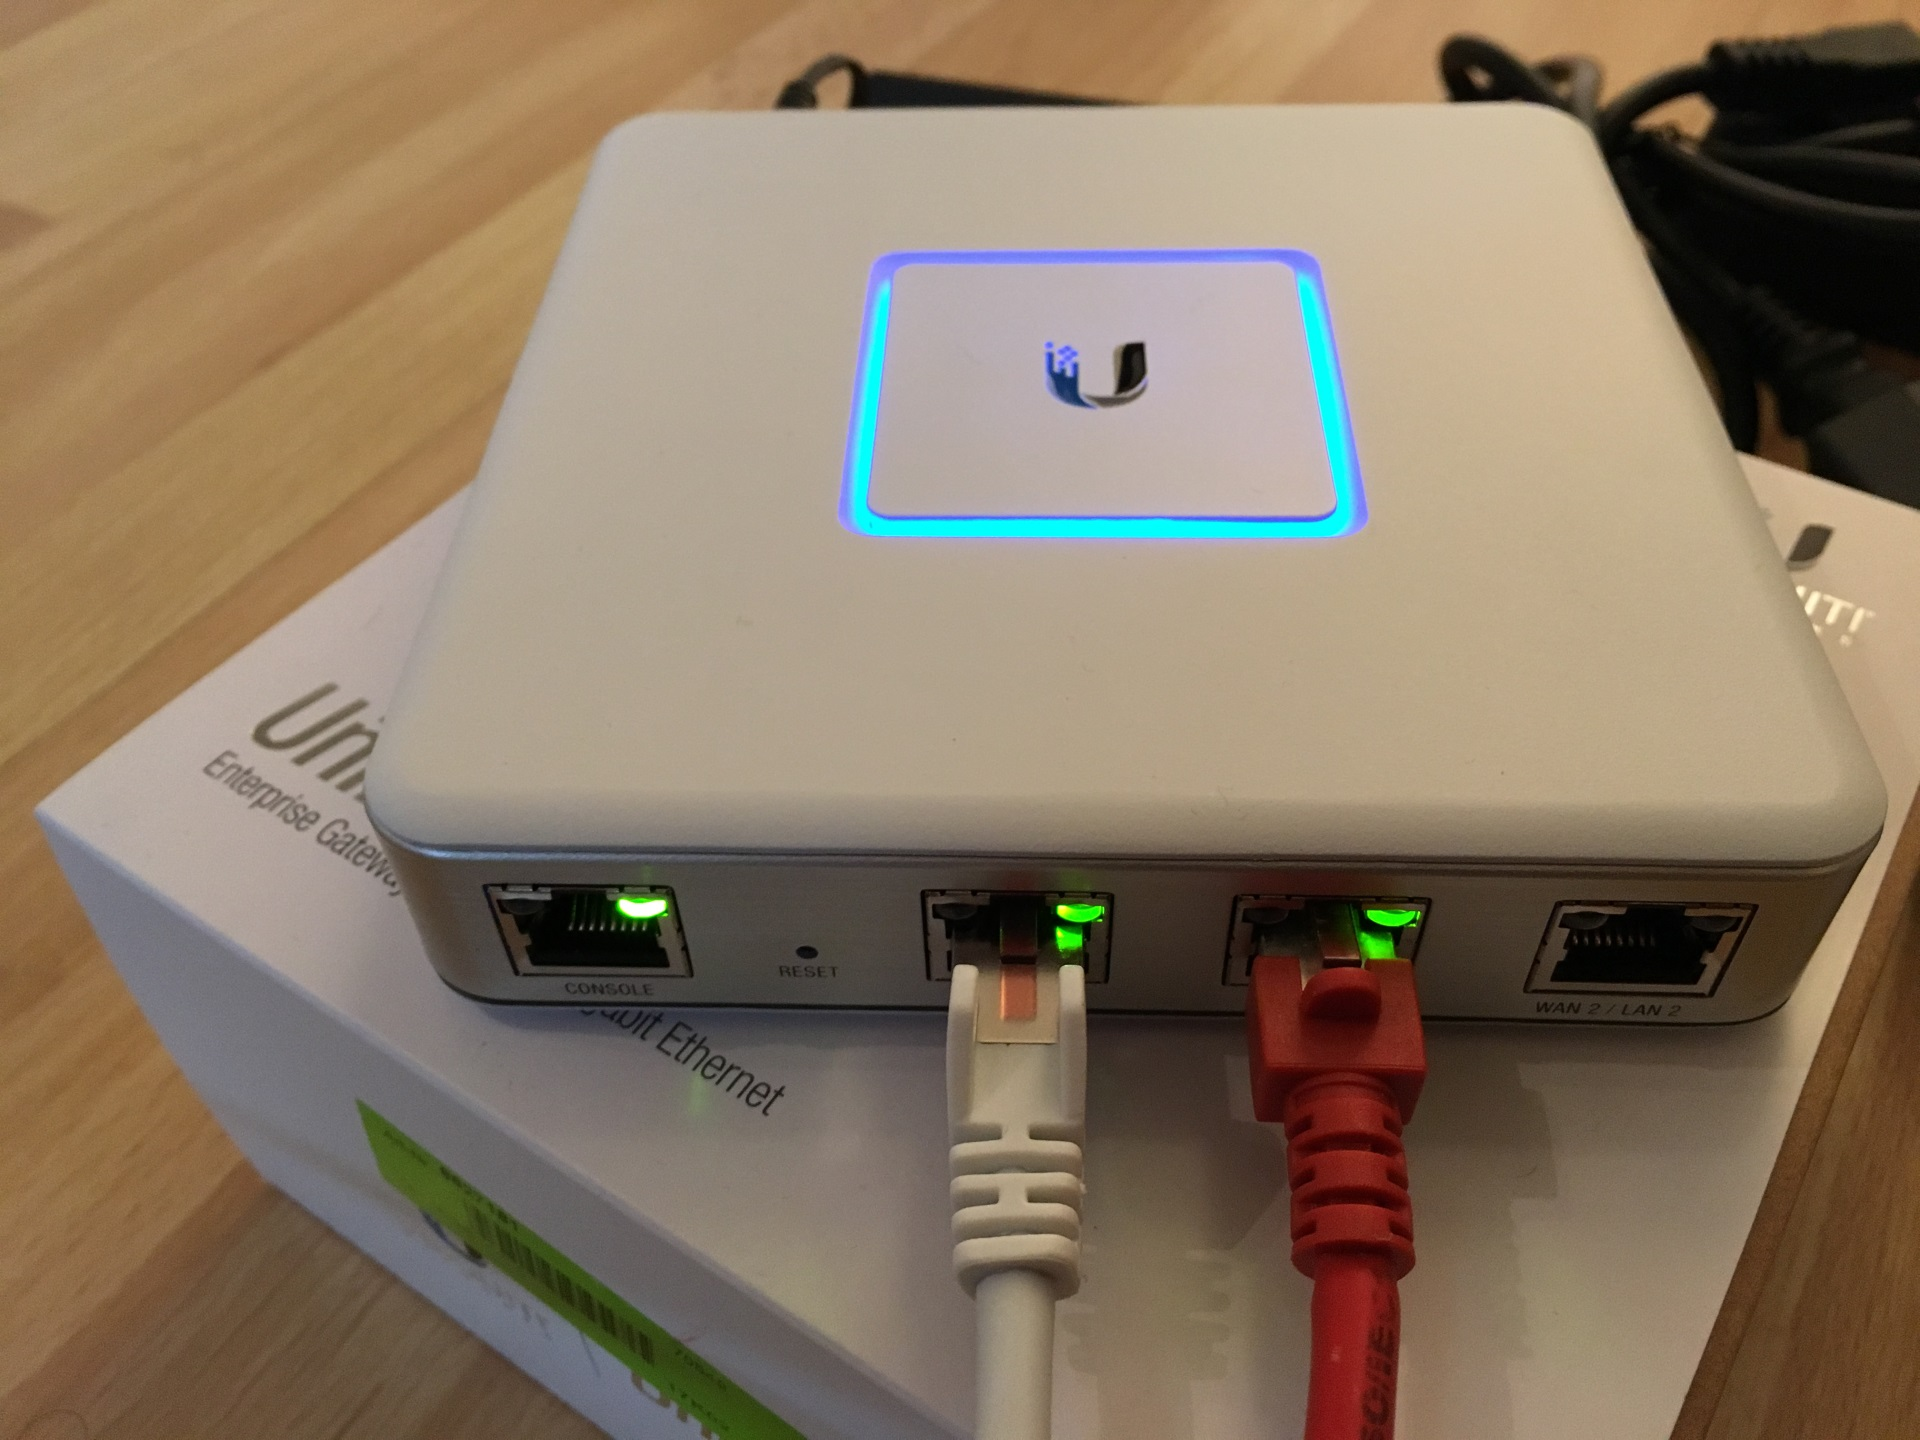 UniFi Security Gateway Einrichtung